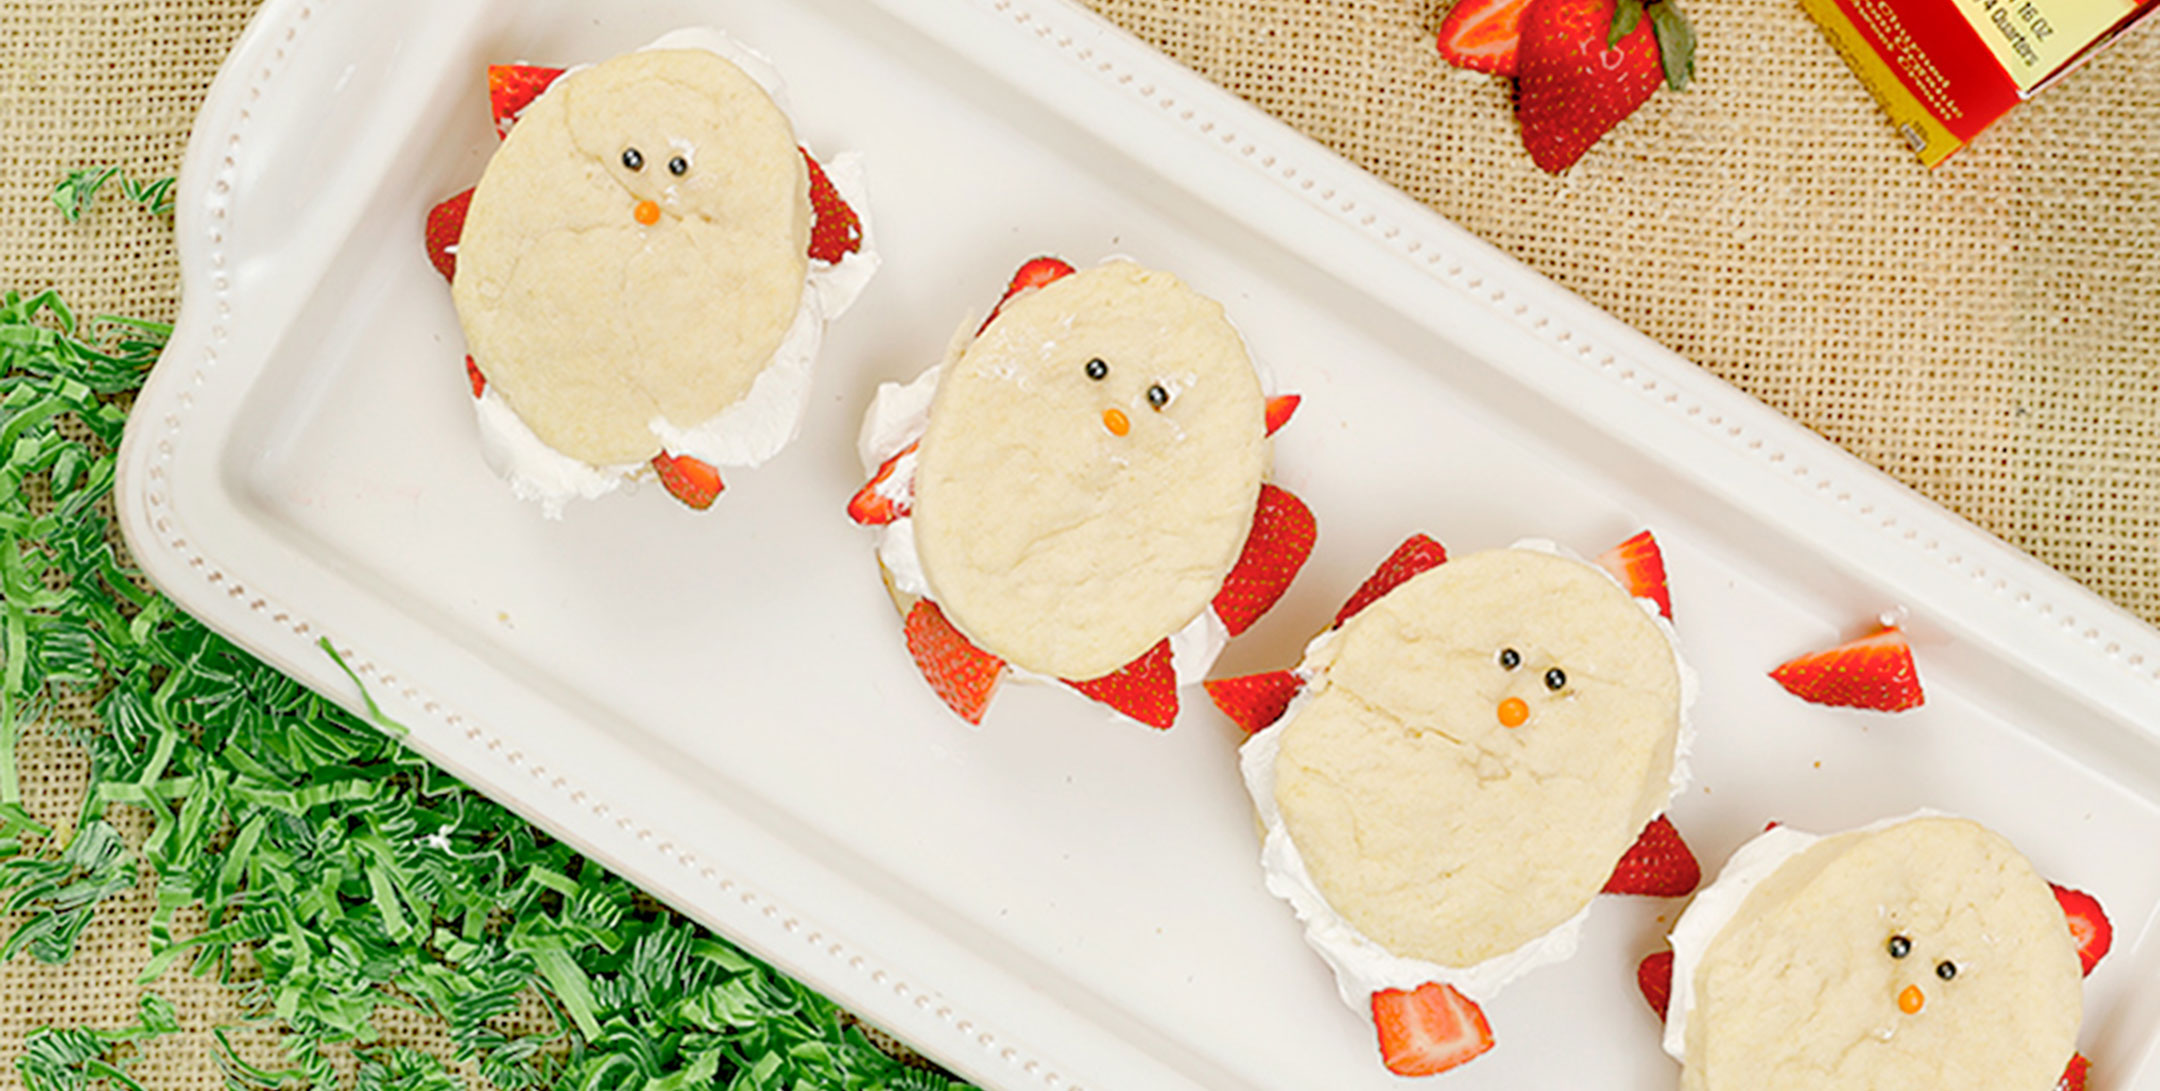 Strawberry Shortcake Chicks